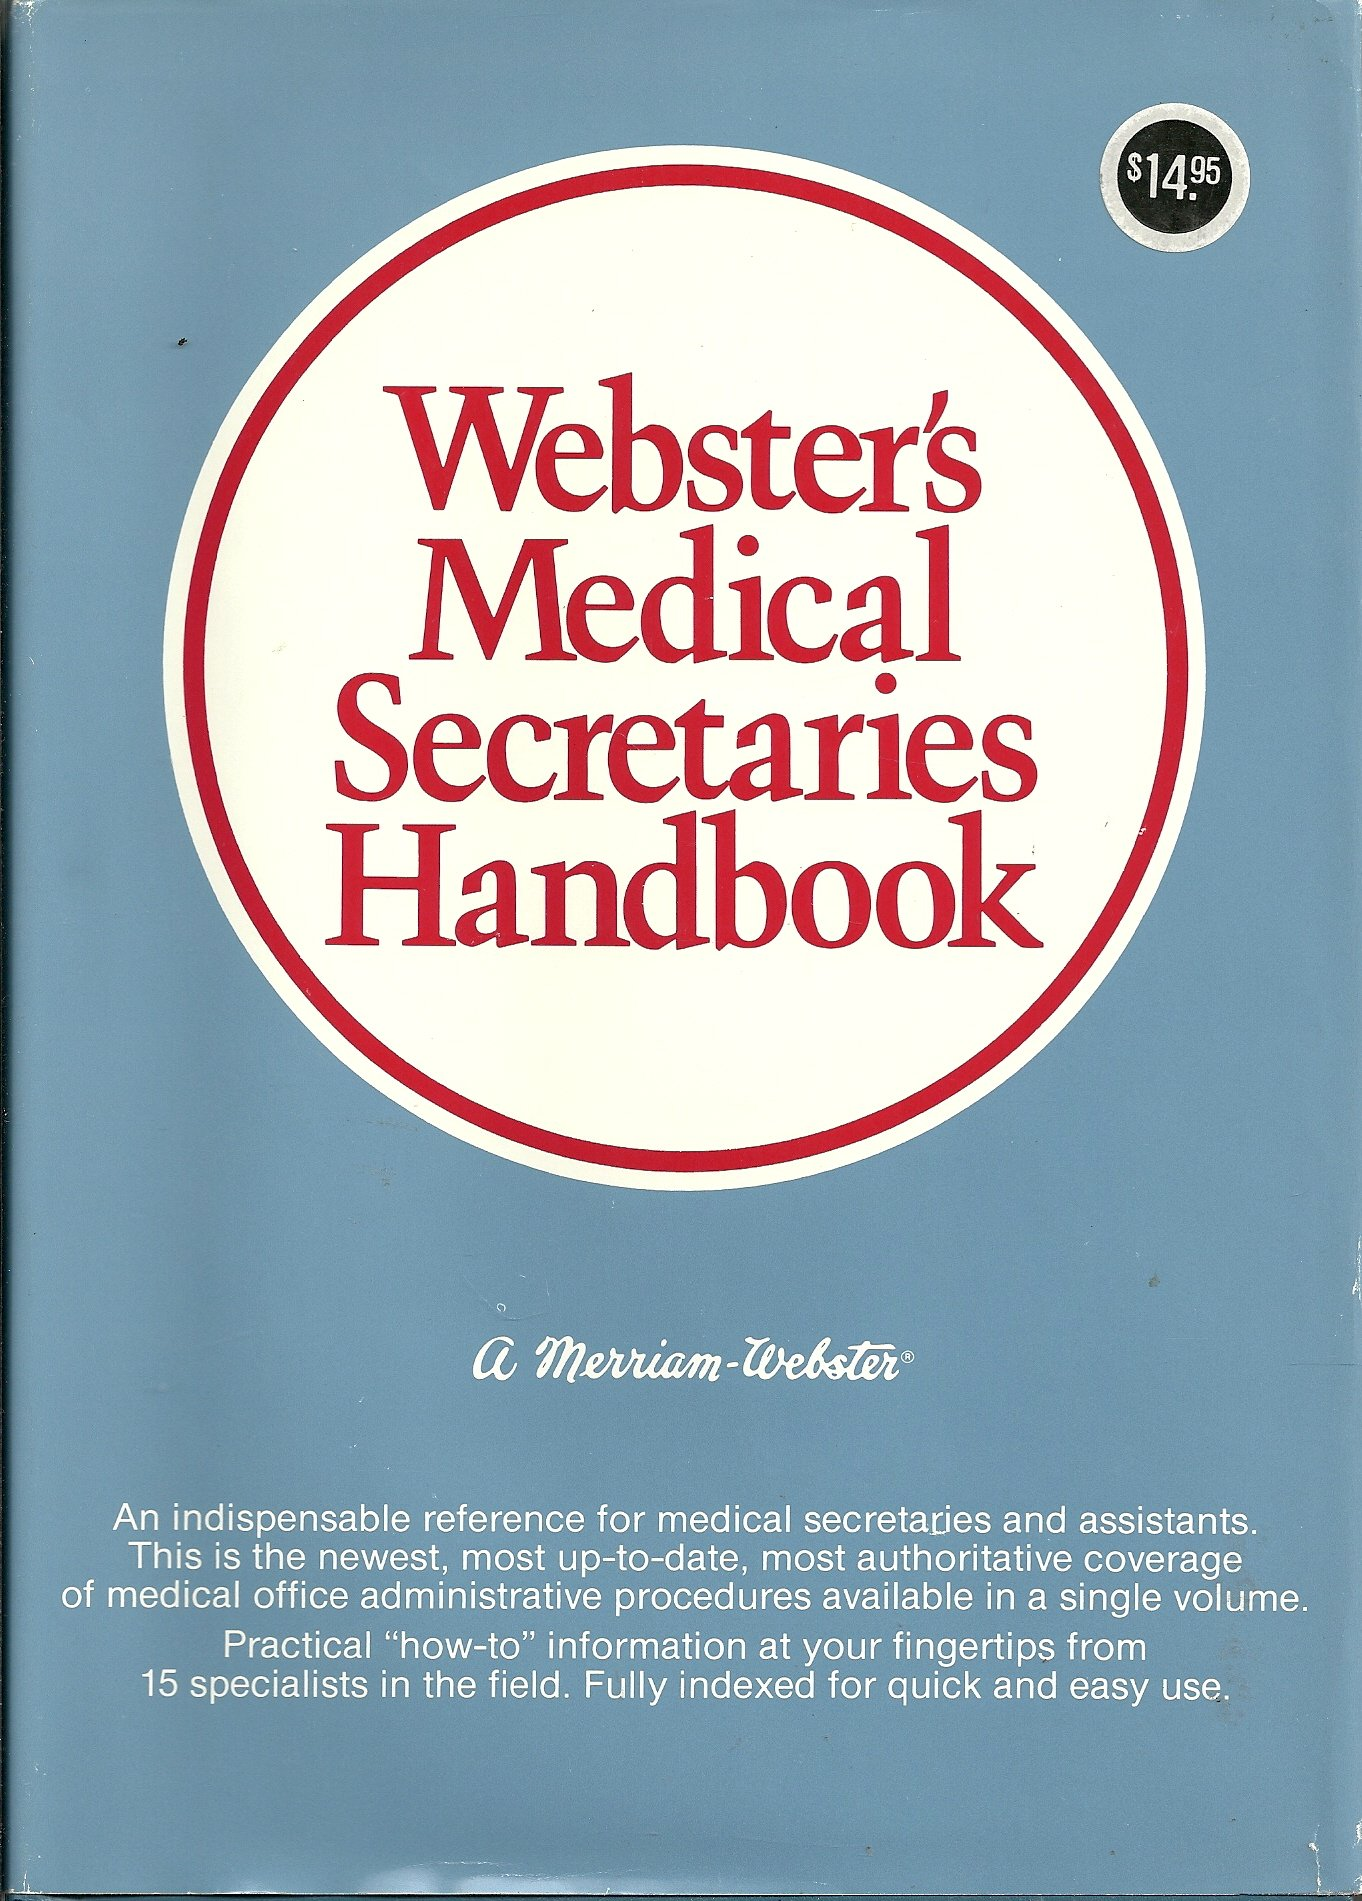 the complete handbook for medical secretaries and assistants